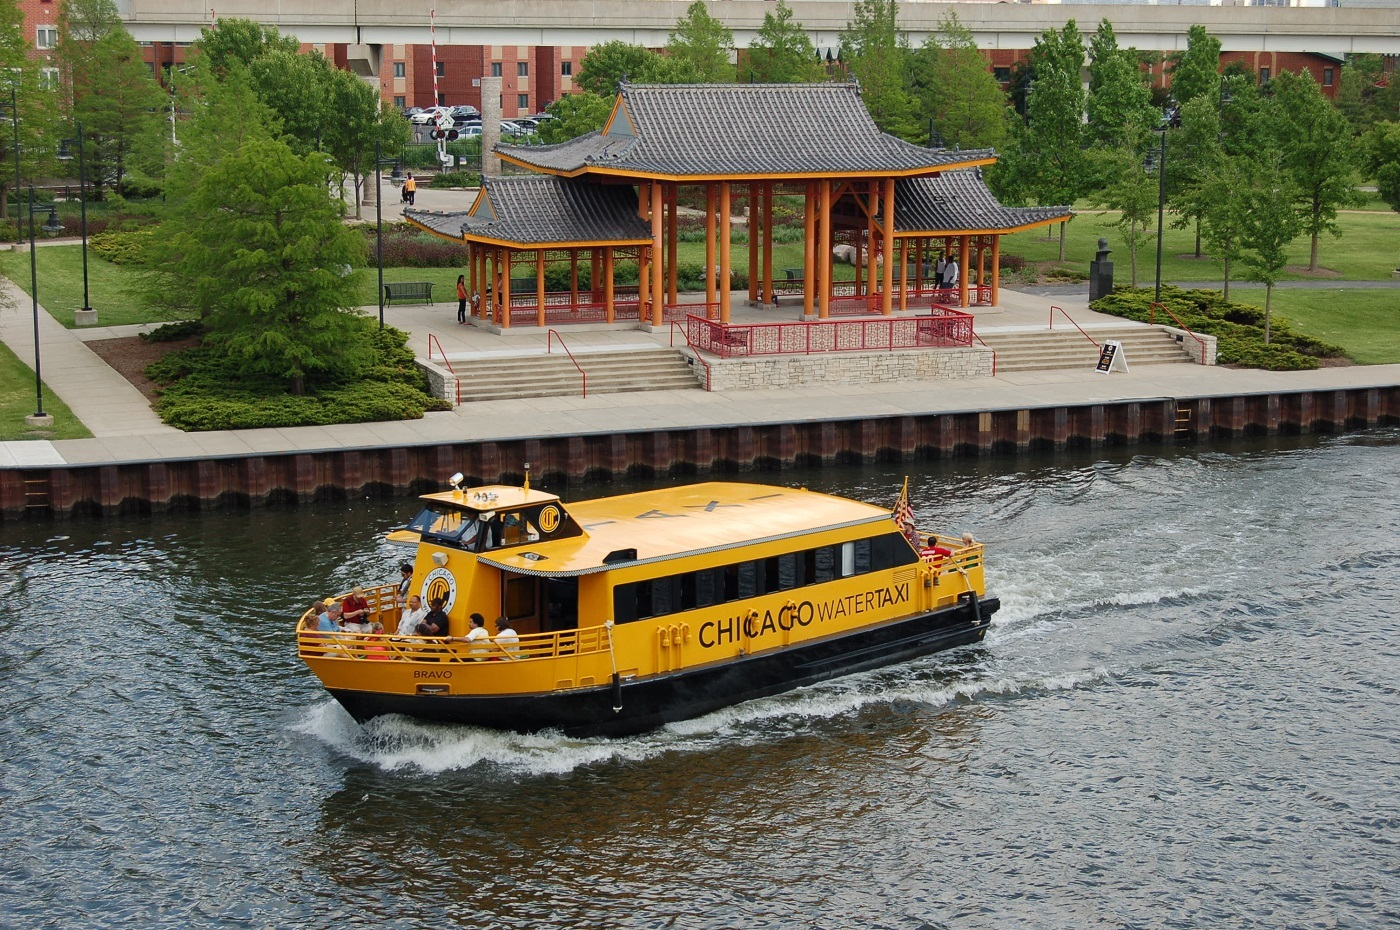 Hop on a Chicago Water Taxi